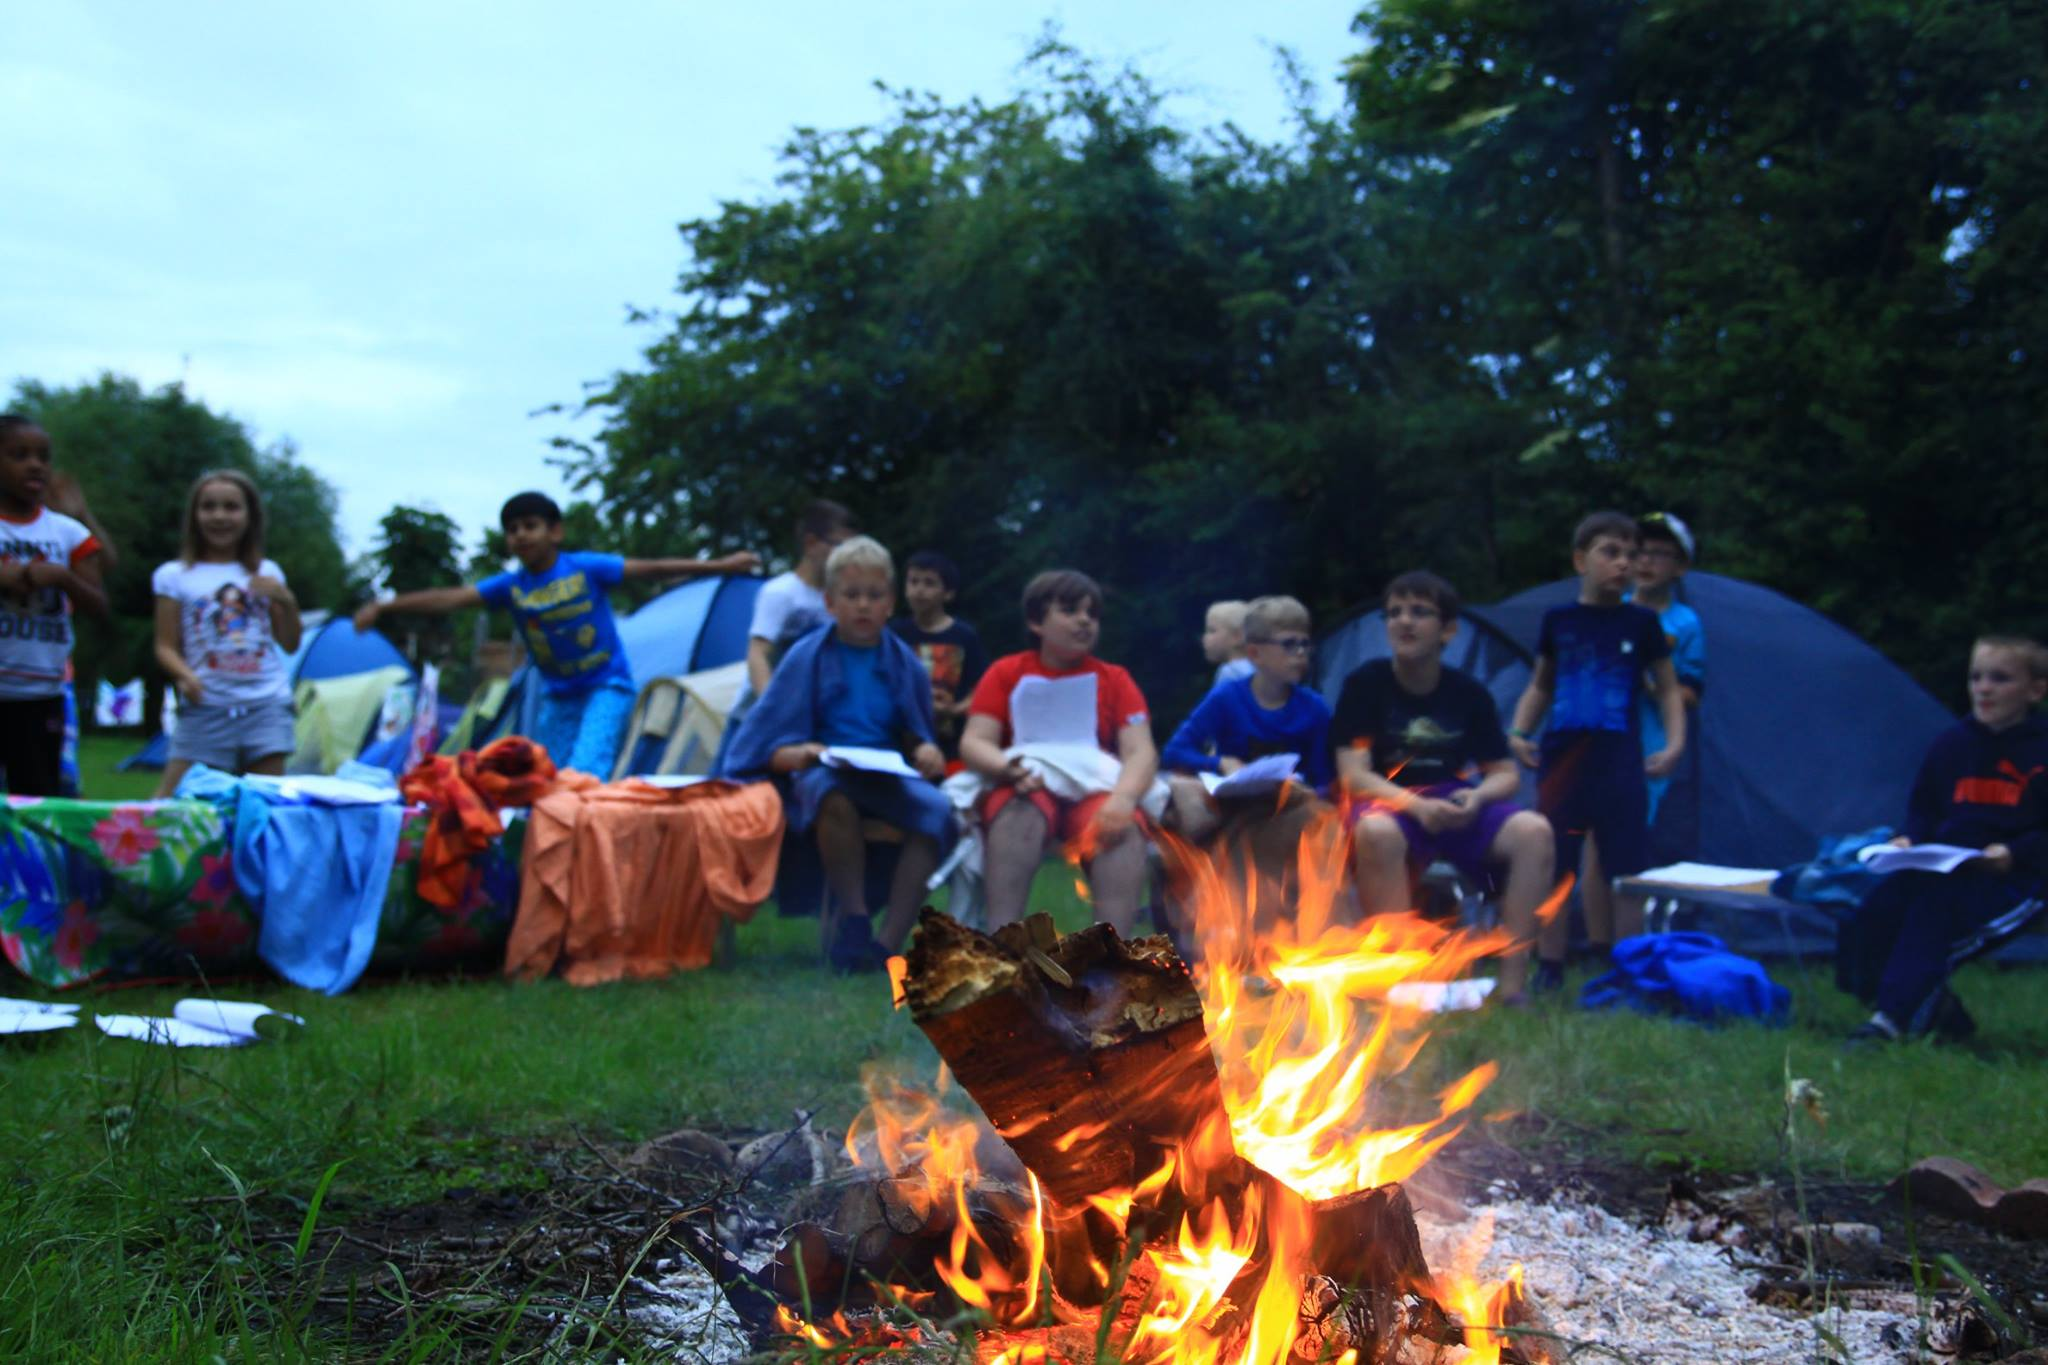 12th Northolt Beavers, Cubs and Scouts around the campfire